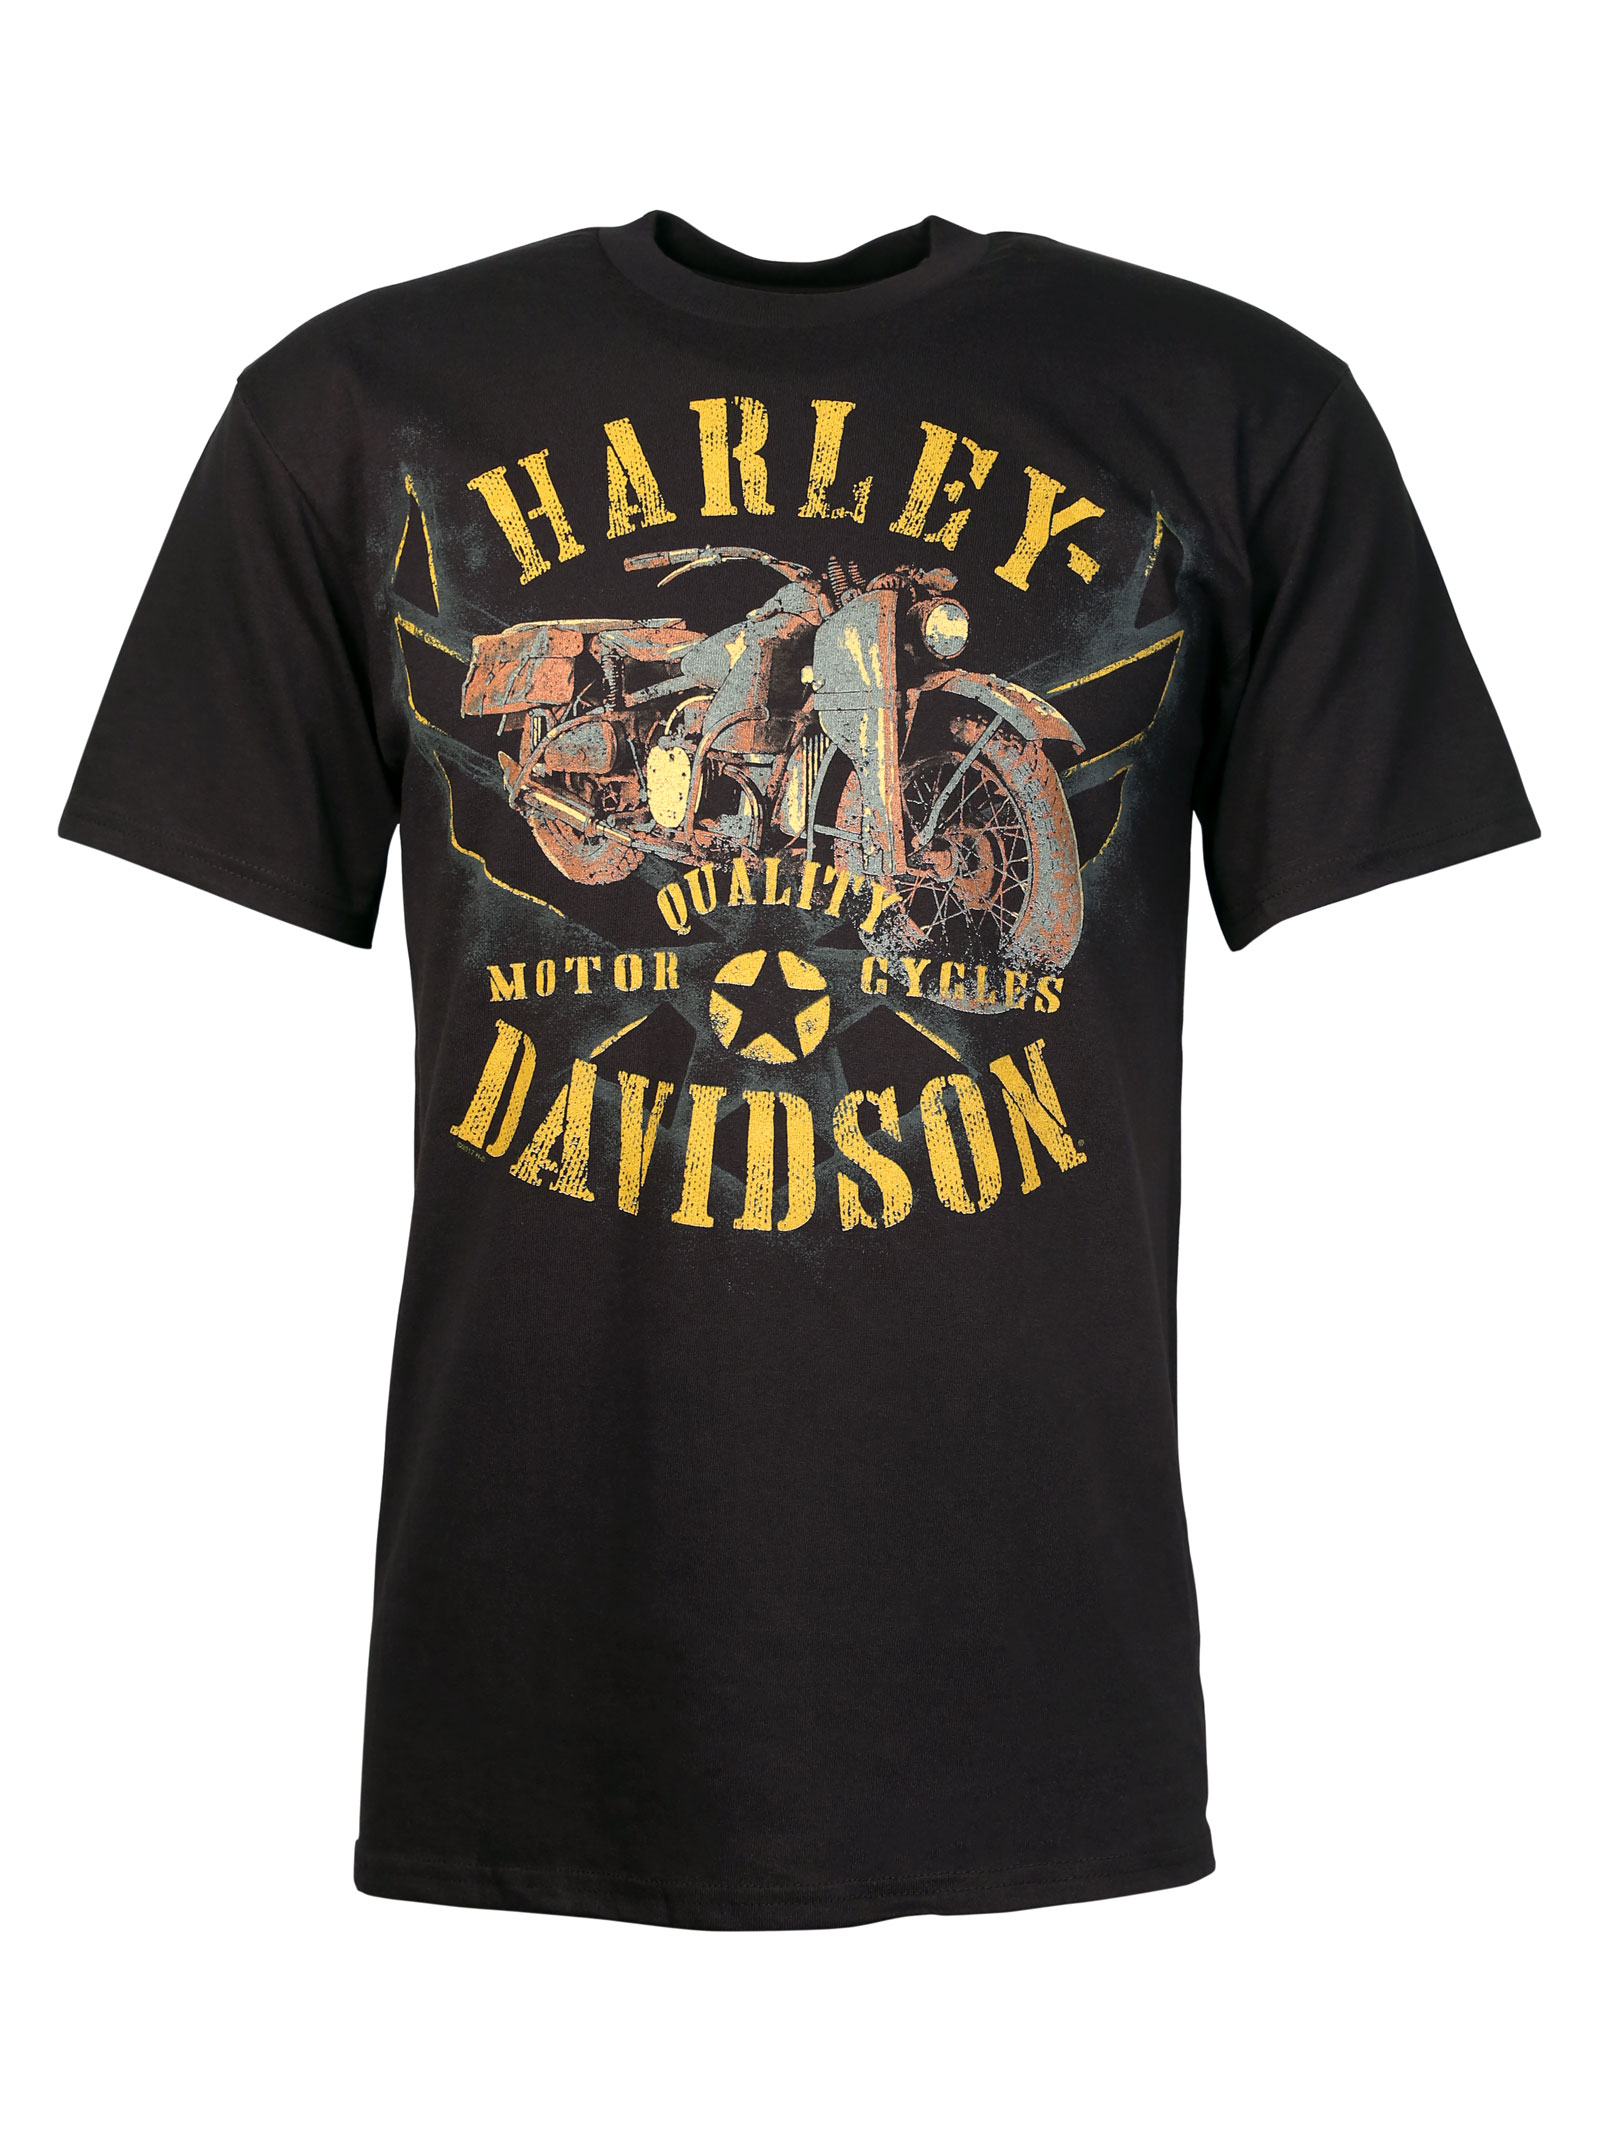 harley davidson t shirt unrested freedom at thunderbike shop. Black Bedroom Furniture Sets. Home Design Ideas